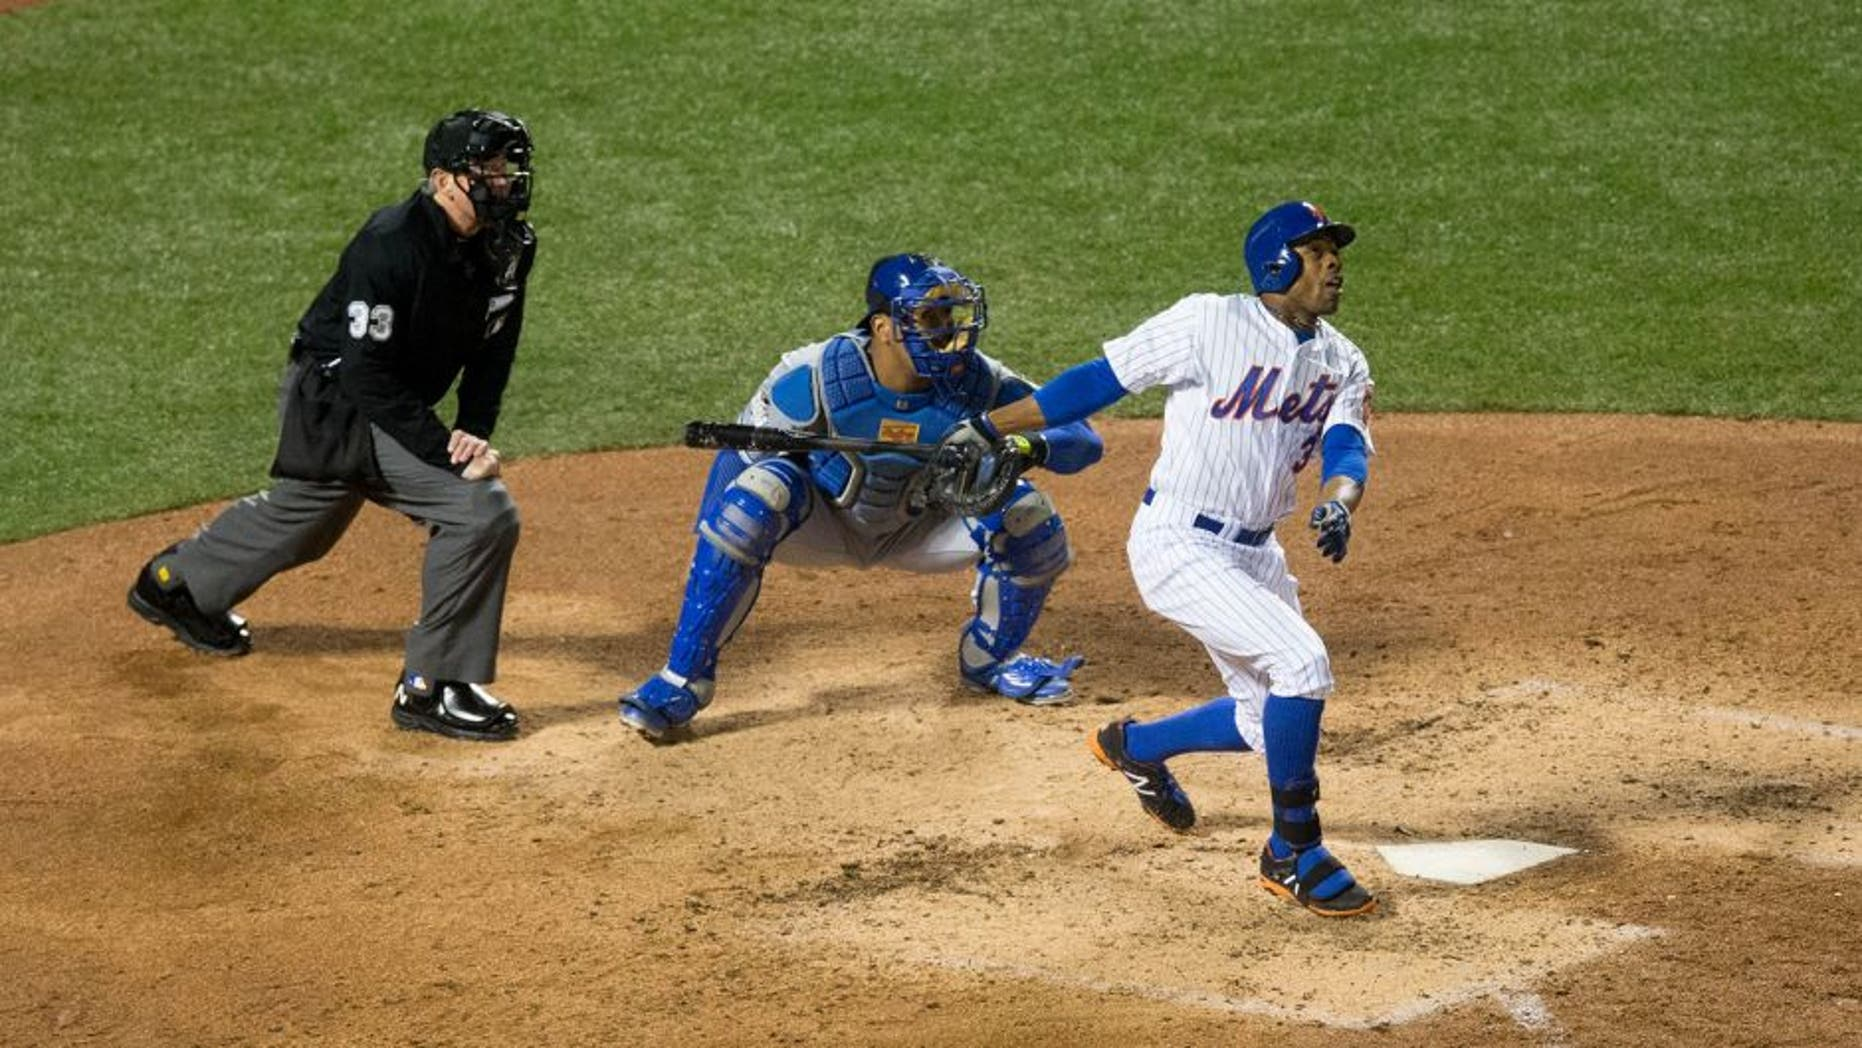 NEW YORK, NY - OCTOBER 30: Curtis Granderson #3 of the New York Mets bats during Game 3 of the 2015 World Series against the Kansas City Royals at Citi Field on Friday, October 30, 2015 in the Queens borough of New York City. (Photo by Rob Tringali/MLB Photos via Getty Images)